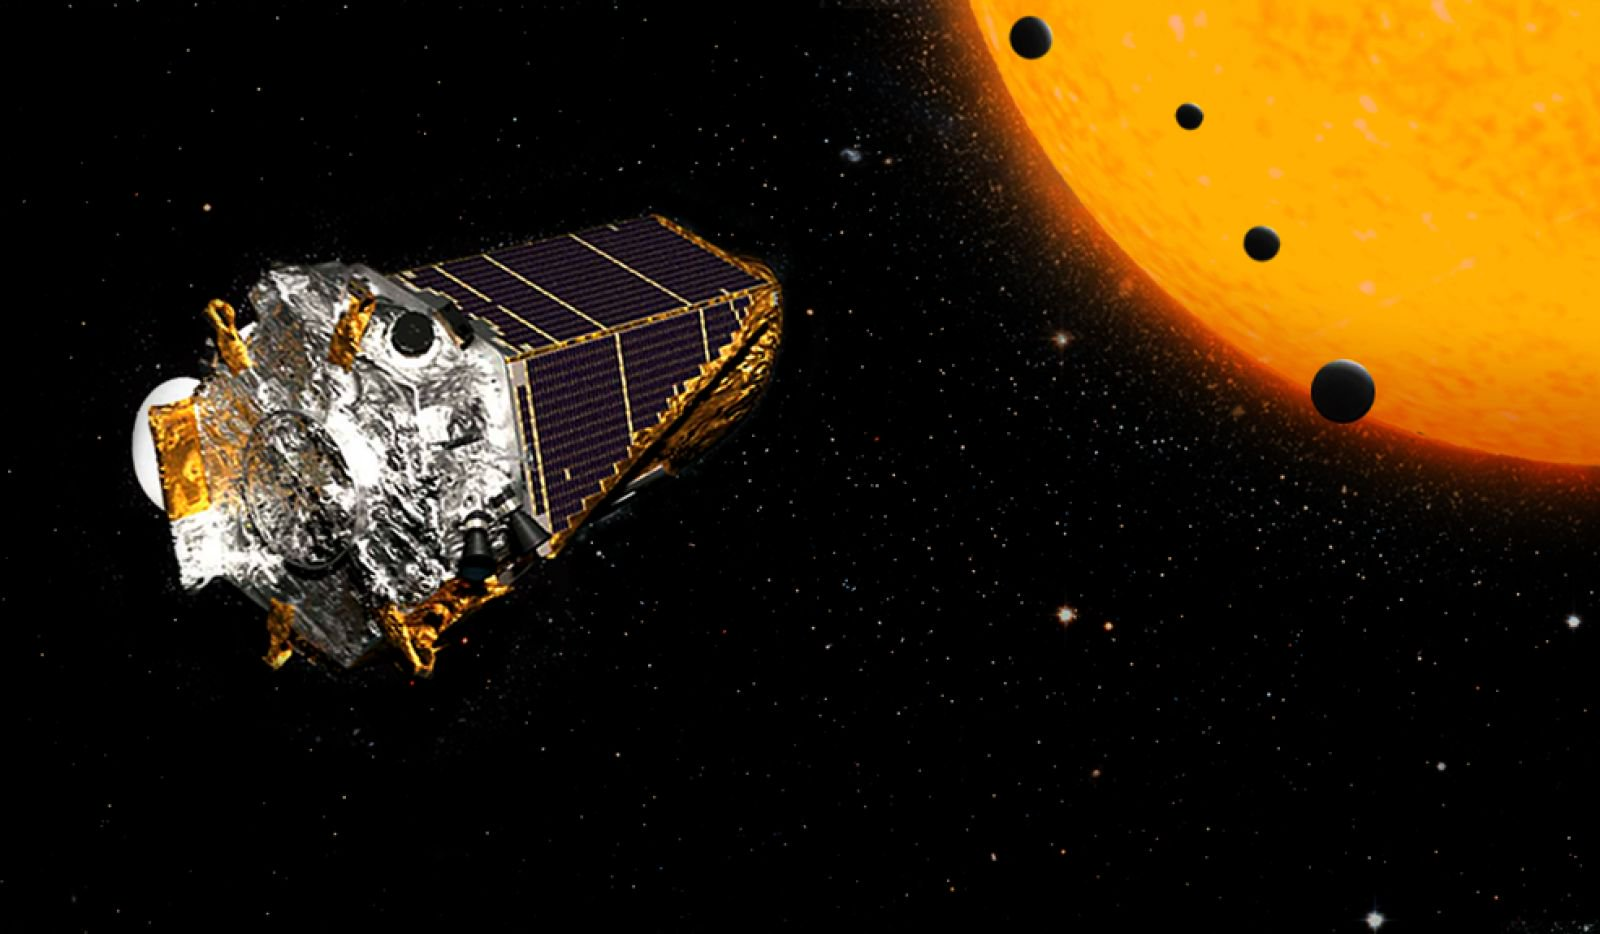 After a few months, the space telescope